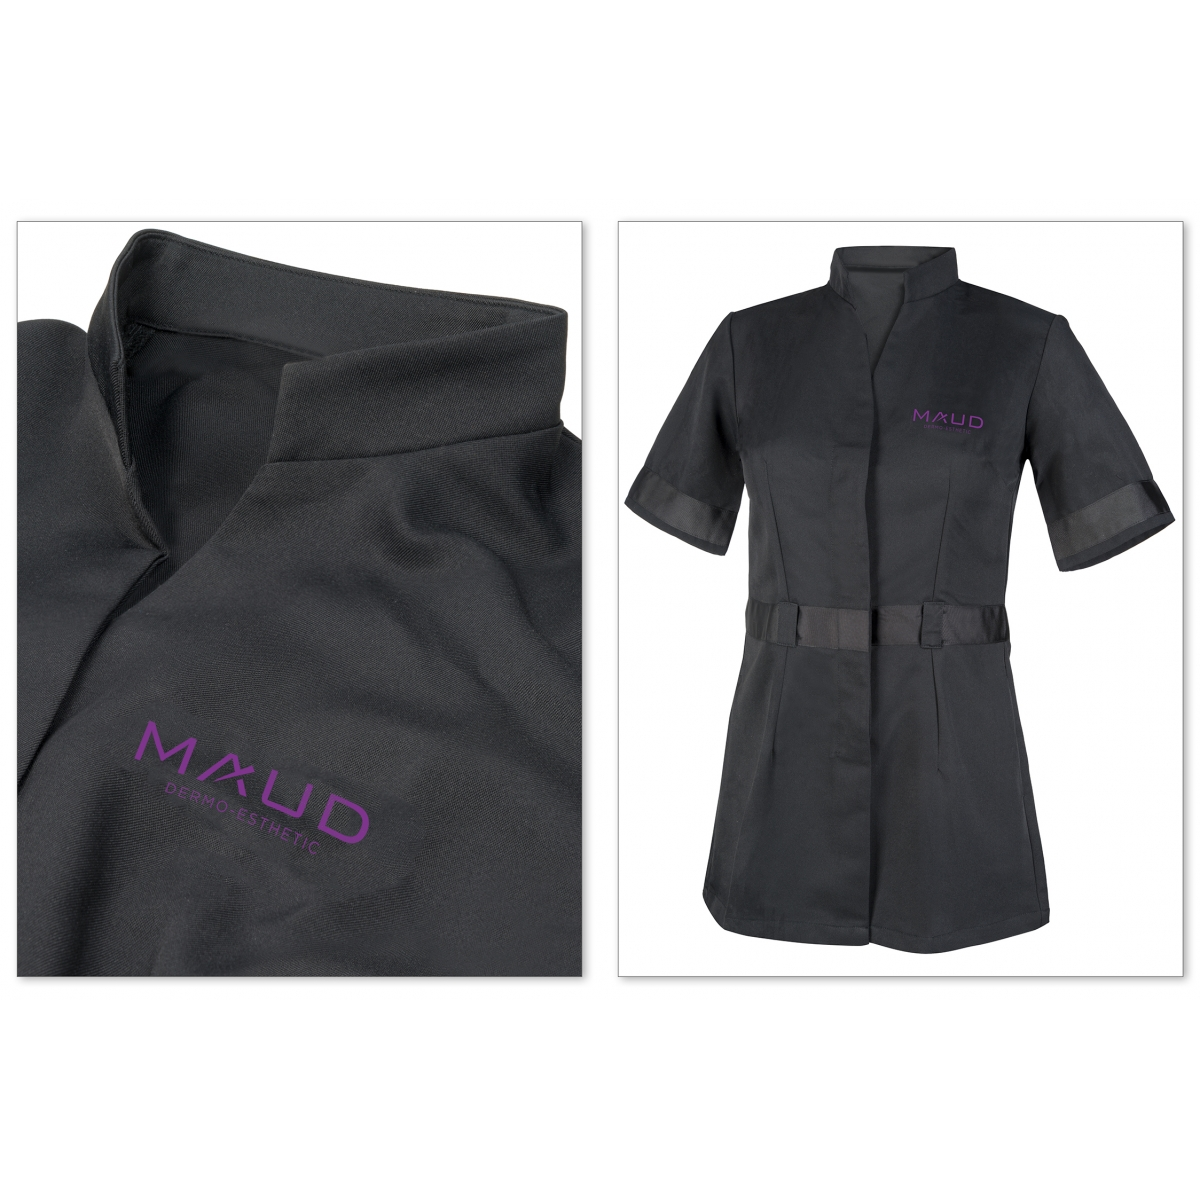 VETEMENTS - MAUD PROFESSIONAL SHOP - BLOUSE PROFESSIONNELLE FEMME MAUD NOIR (L)